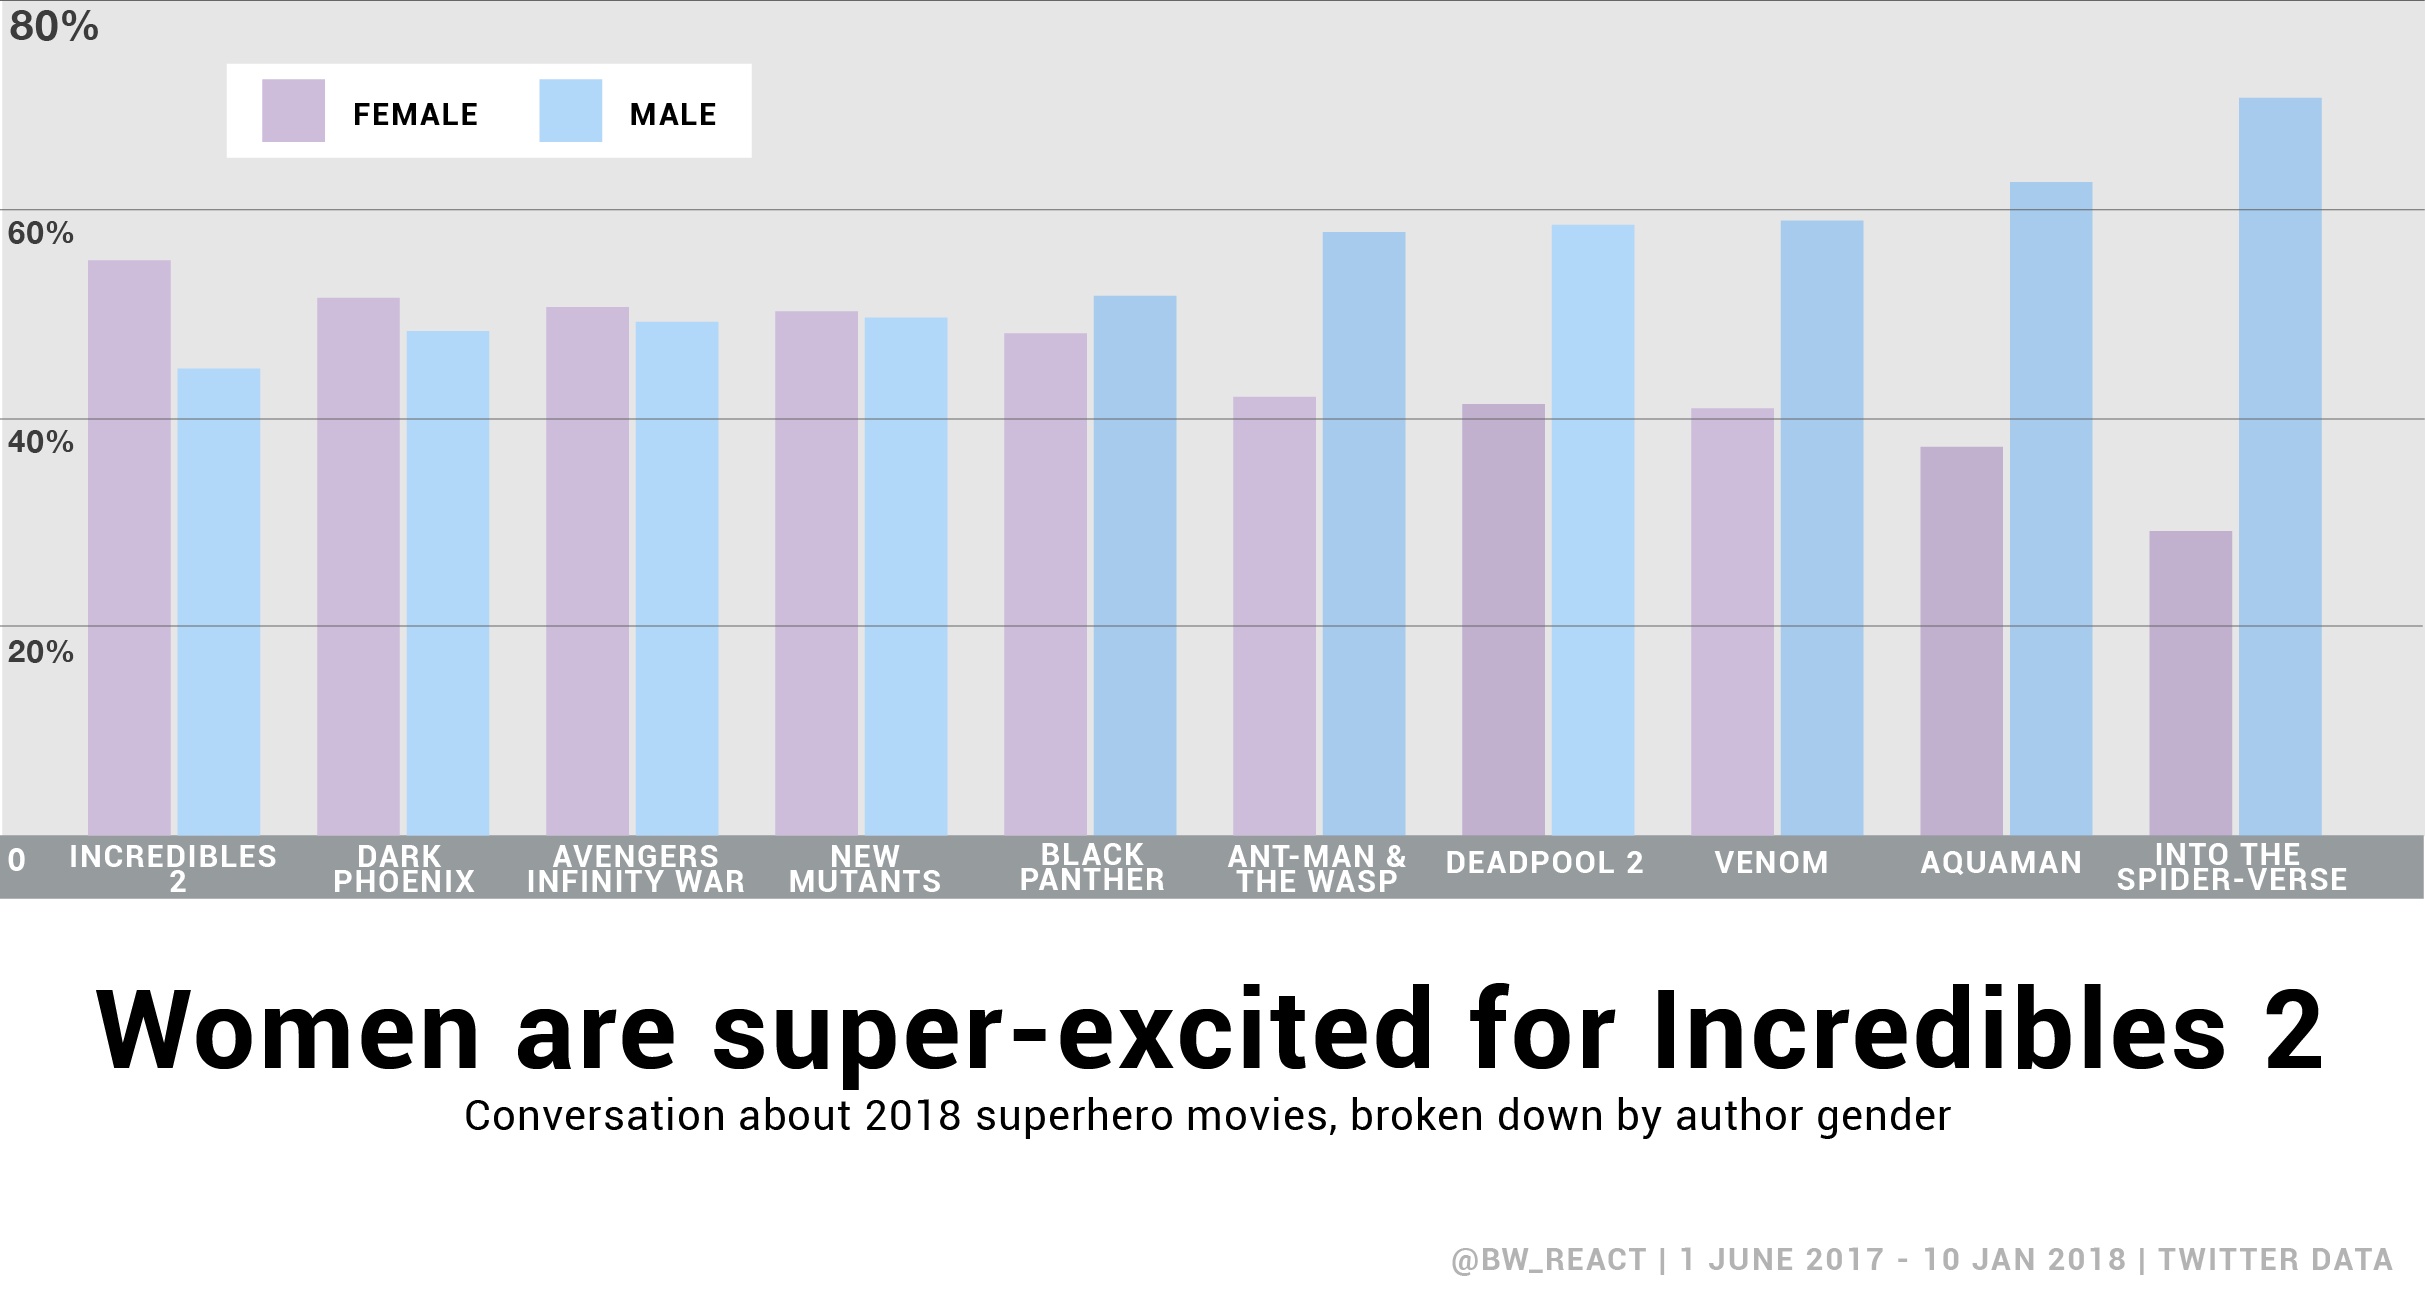 Bar chart shows the breakdown of gender-categorized authors' tweets about 2018's superhero movies.